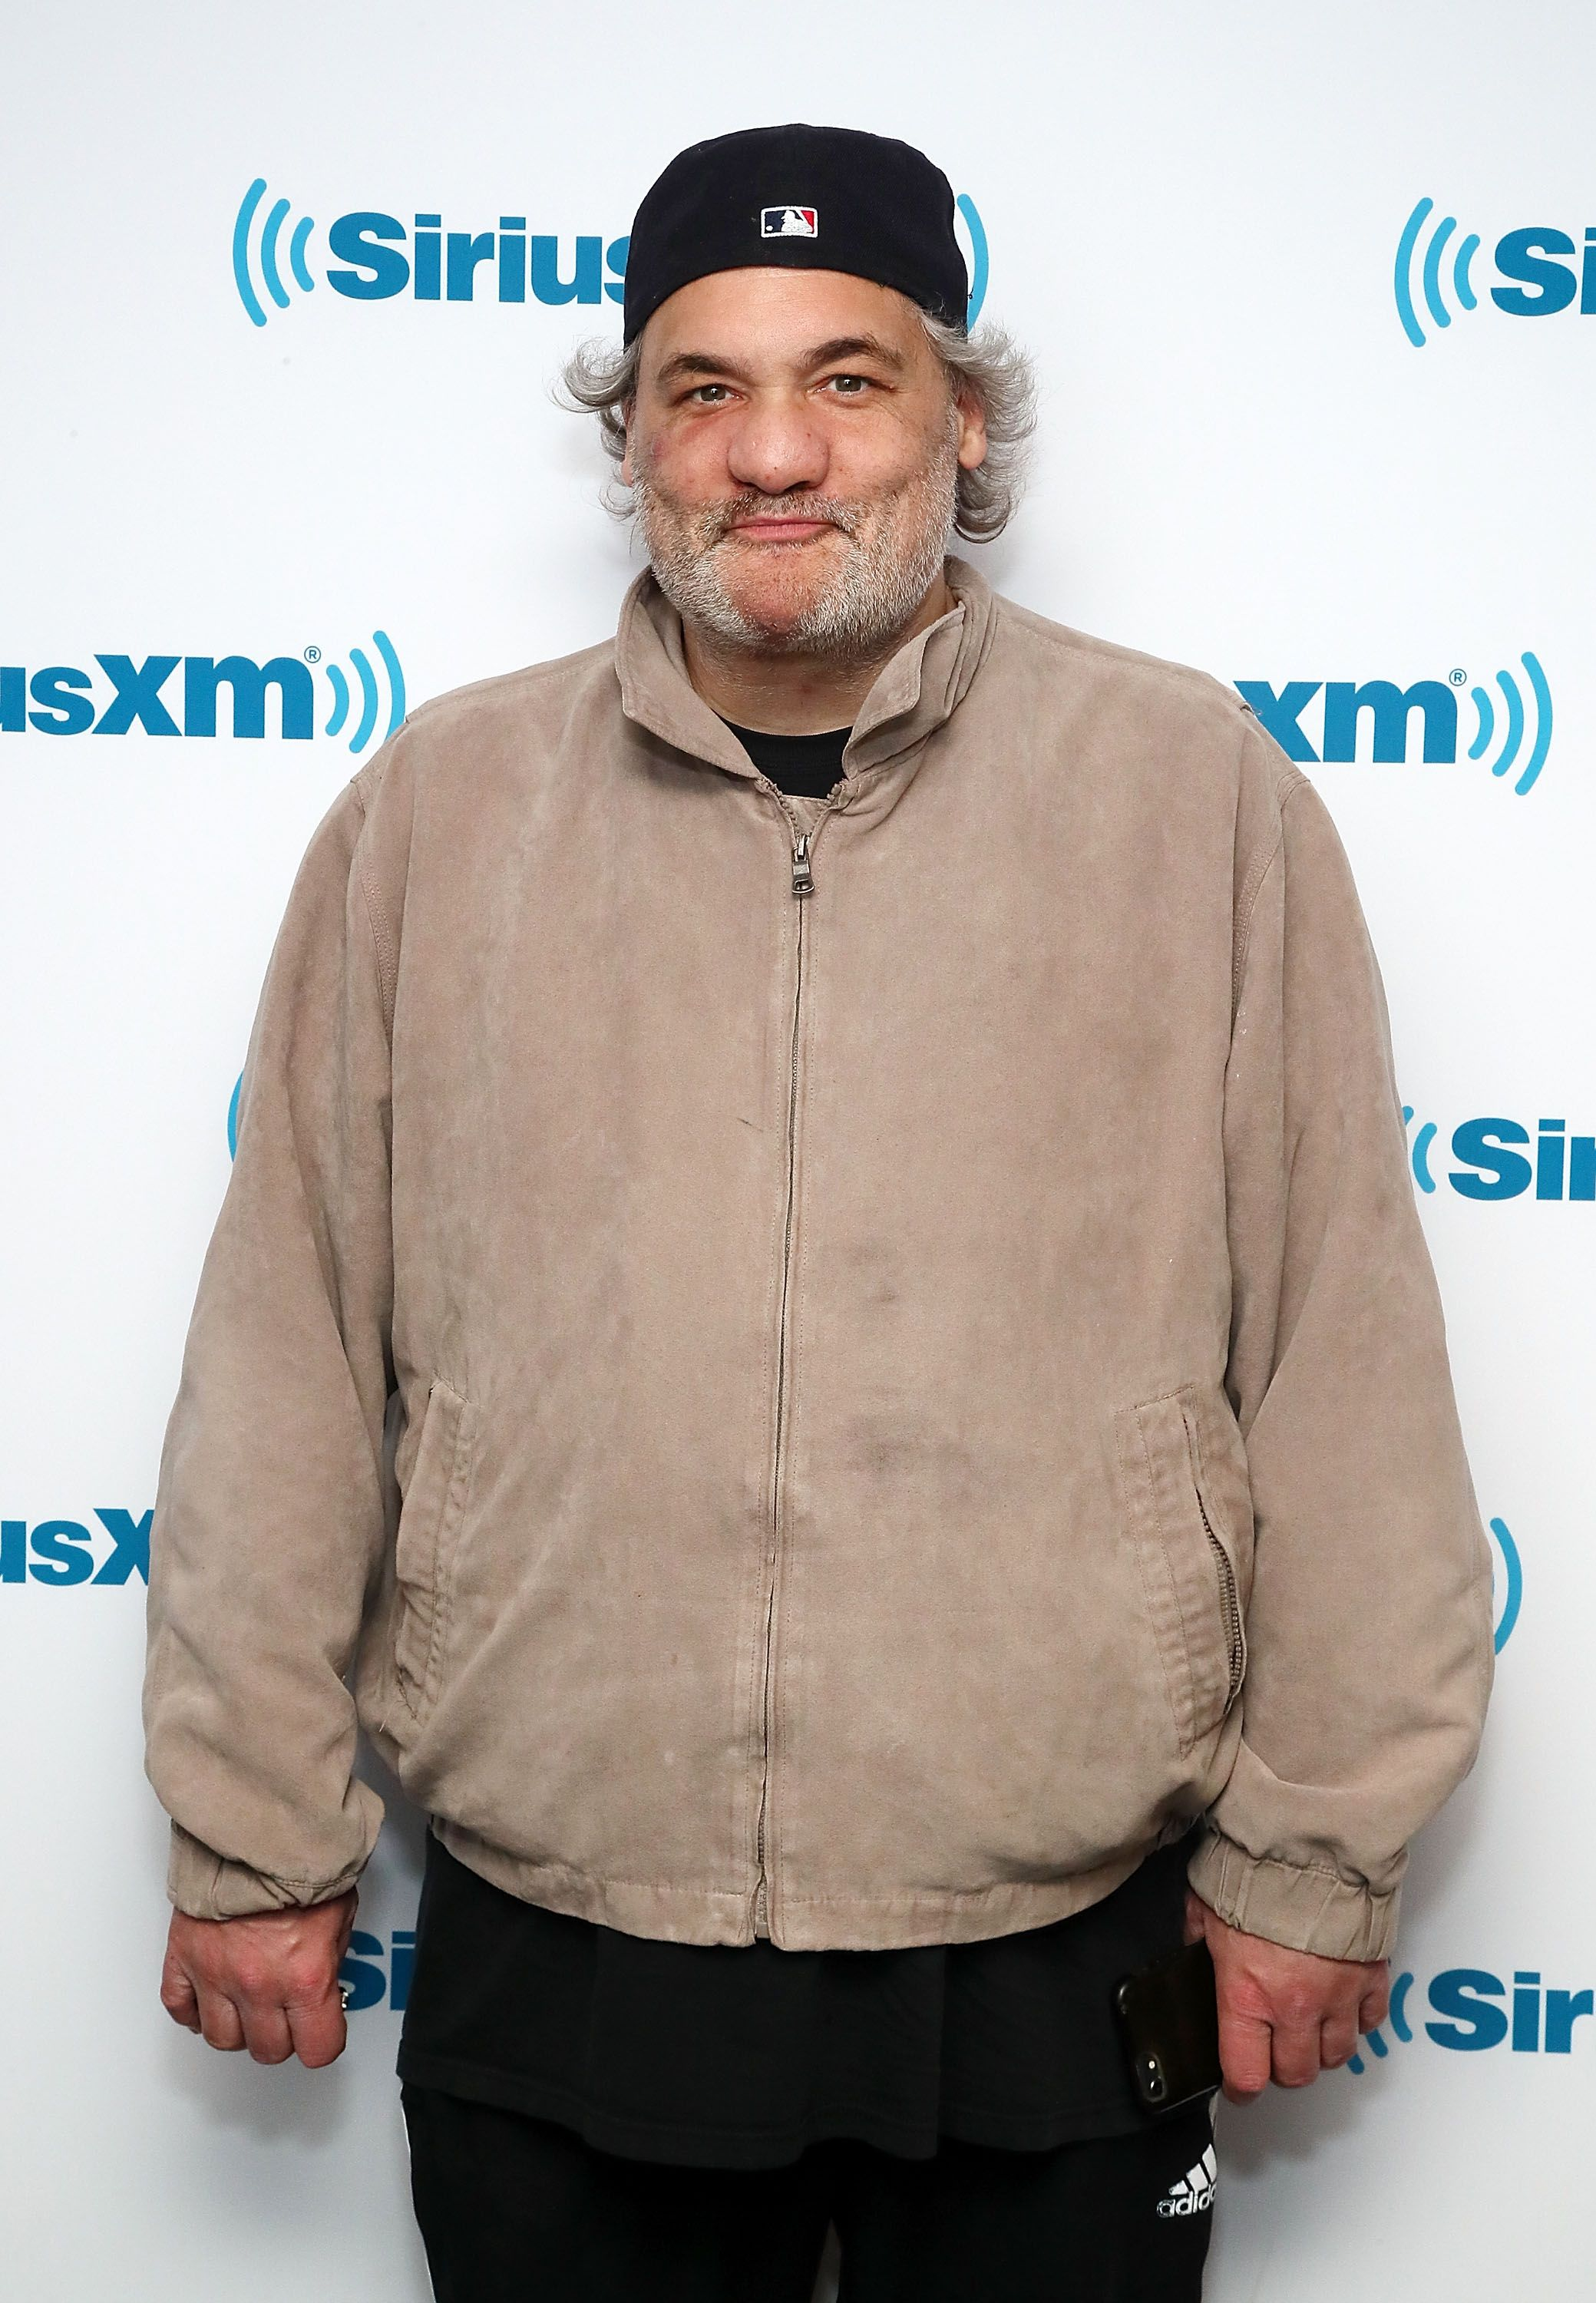 Artie Lange Looks Dramatically Different in Twitter Photo After Leaving Rehab